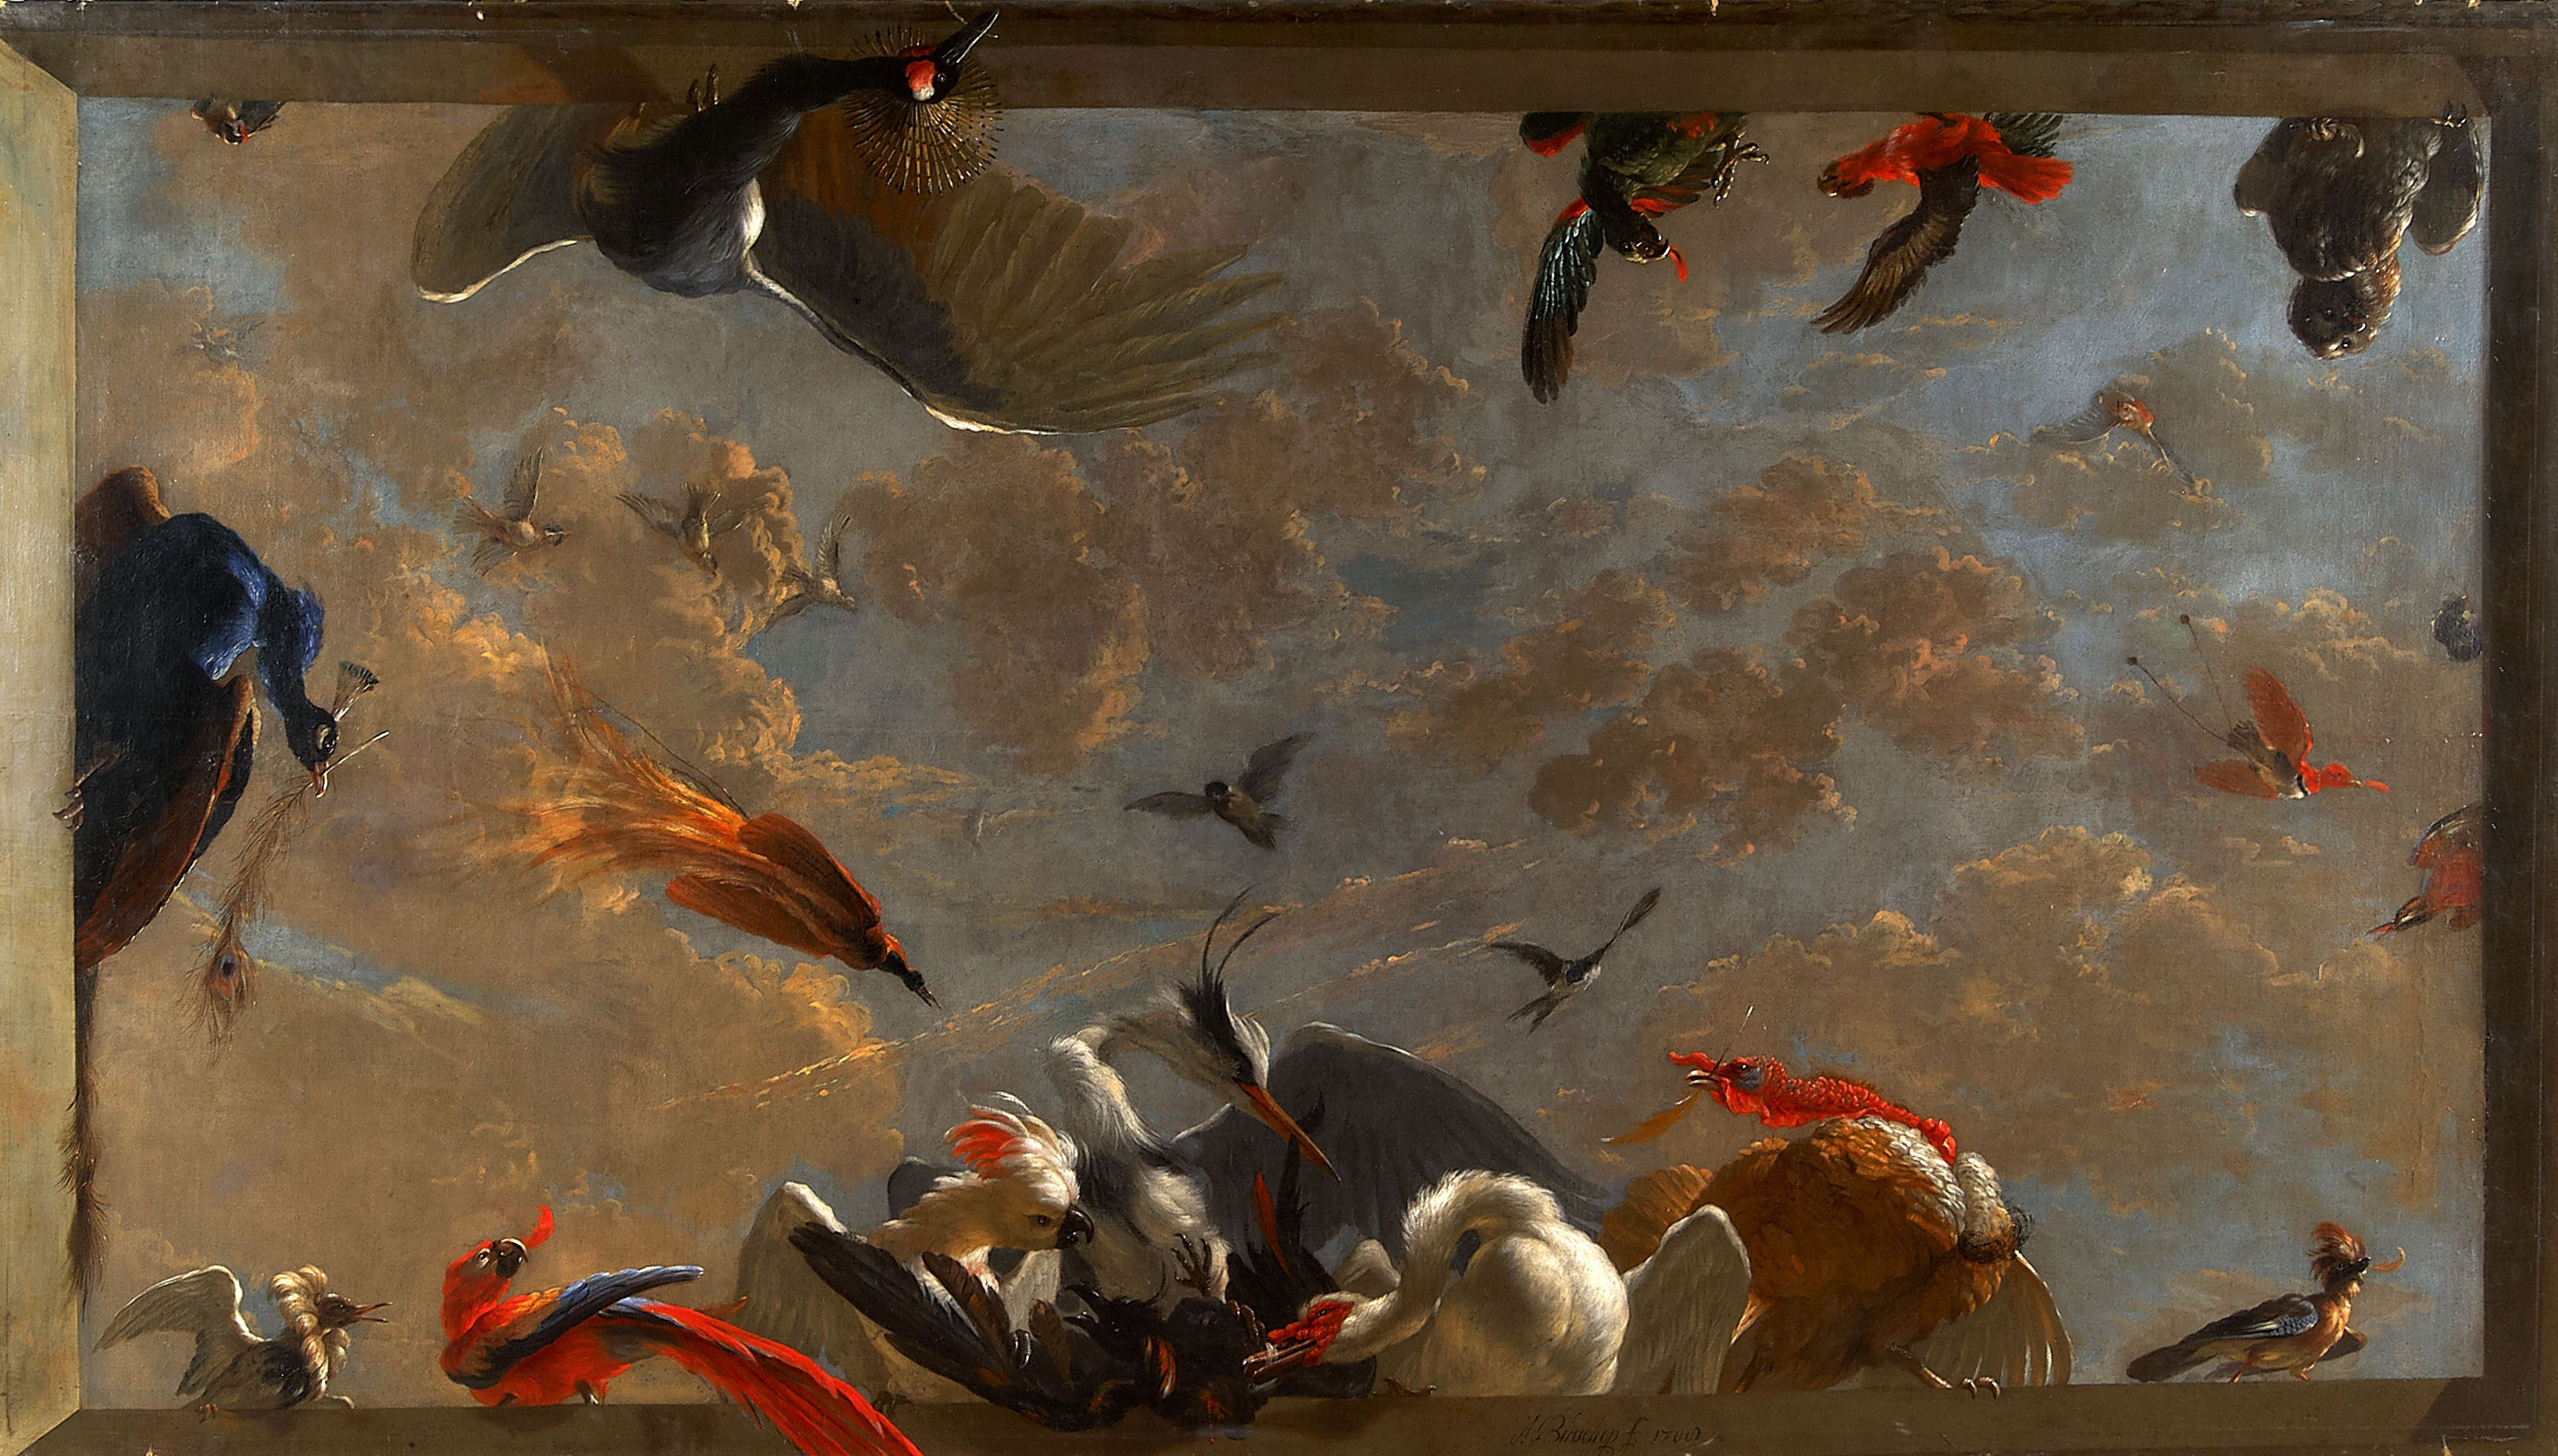 Abraham Busschop, Ceiling Painting from Dordrecht: The Raven Being Robbed Of The Feathers He Had Adorned Himself With, 1708 (Dordrechts Museum)